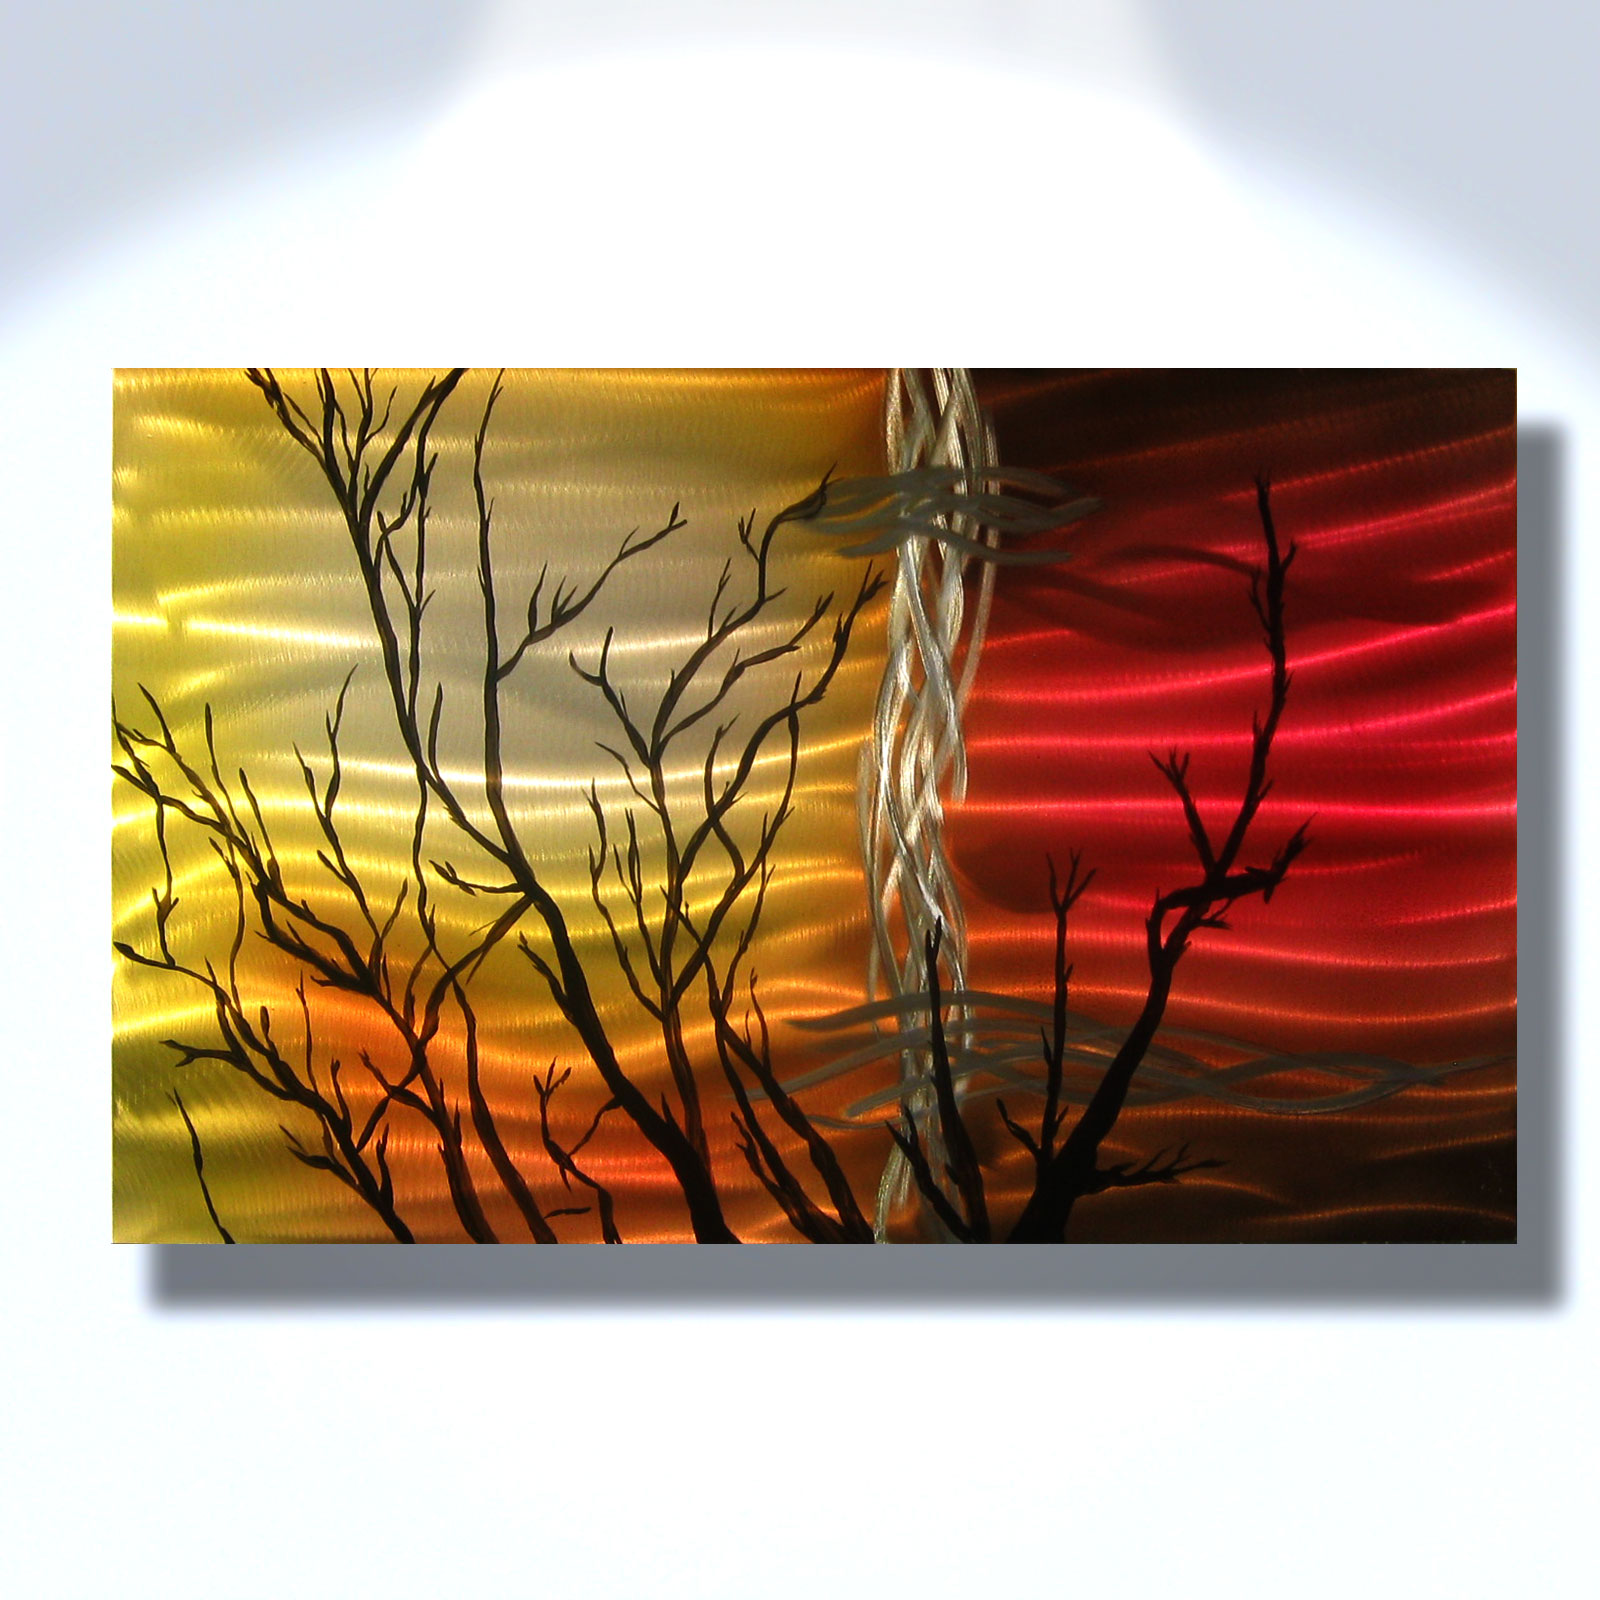 Sunset tree metal wall art abstract sculpture painting modern decor inspiring art gallery - Contemporary wall art decor ...